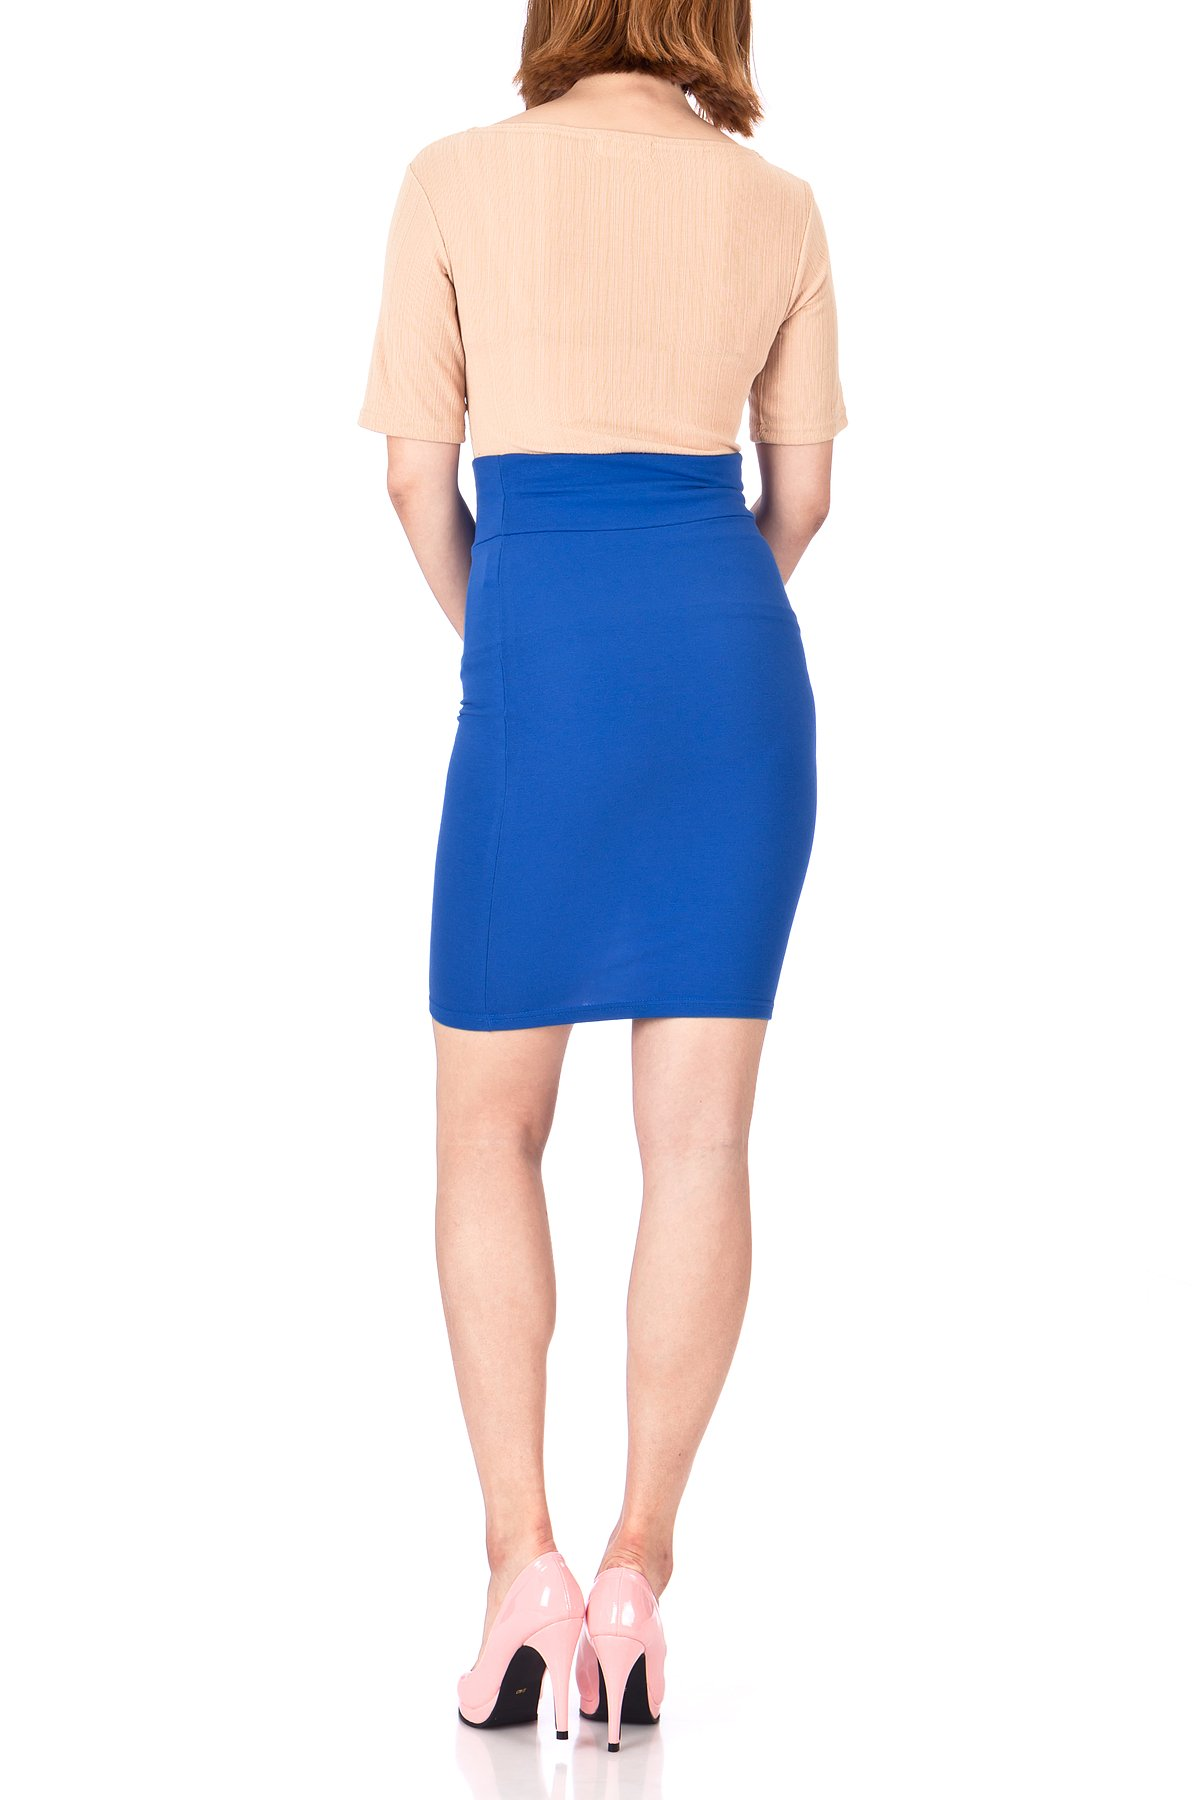 Every Occasion Stretch Pull on Wide High Waist Bodycon Pencil Knee Length Midi Skirt Royal Blue 05